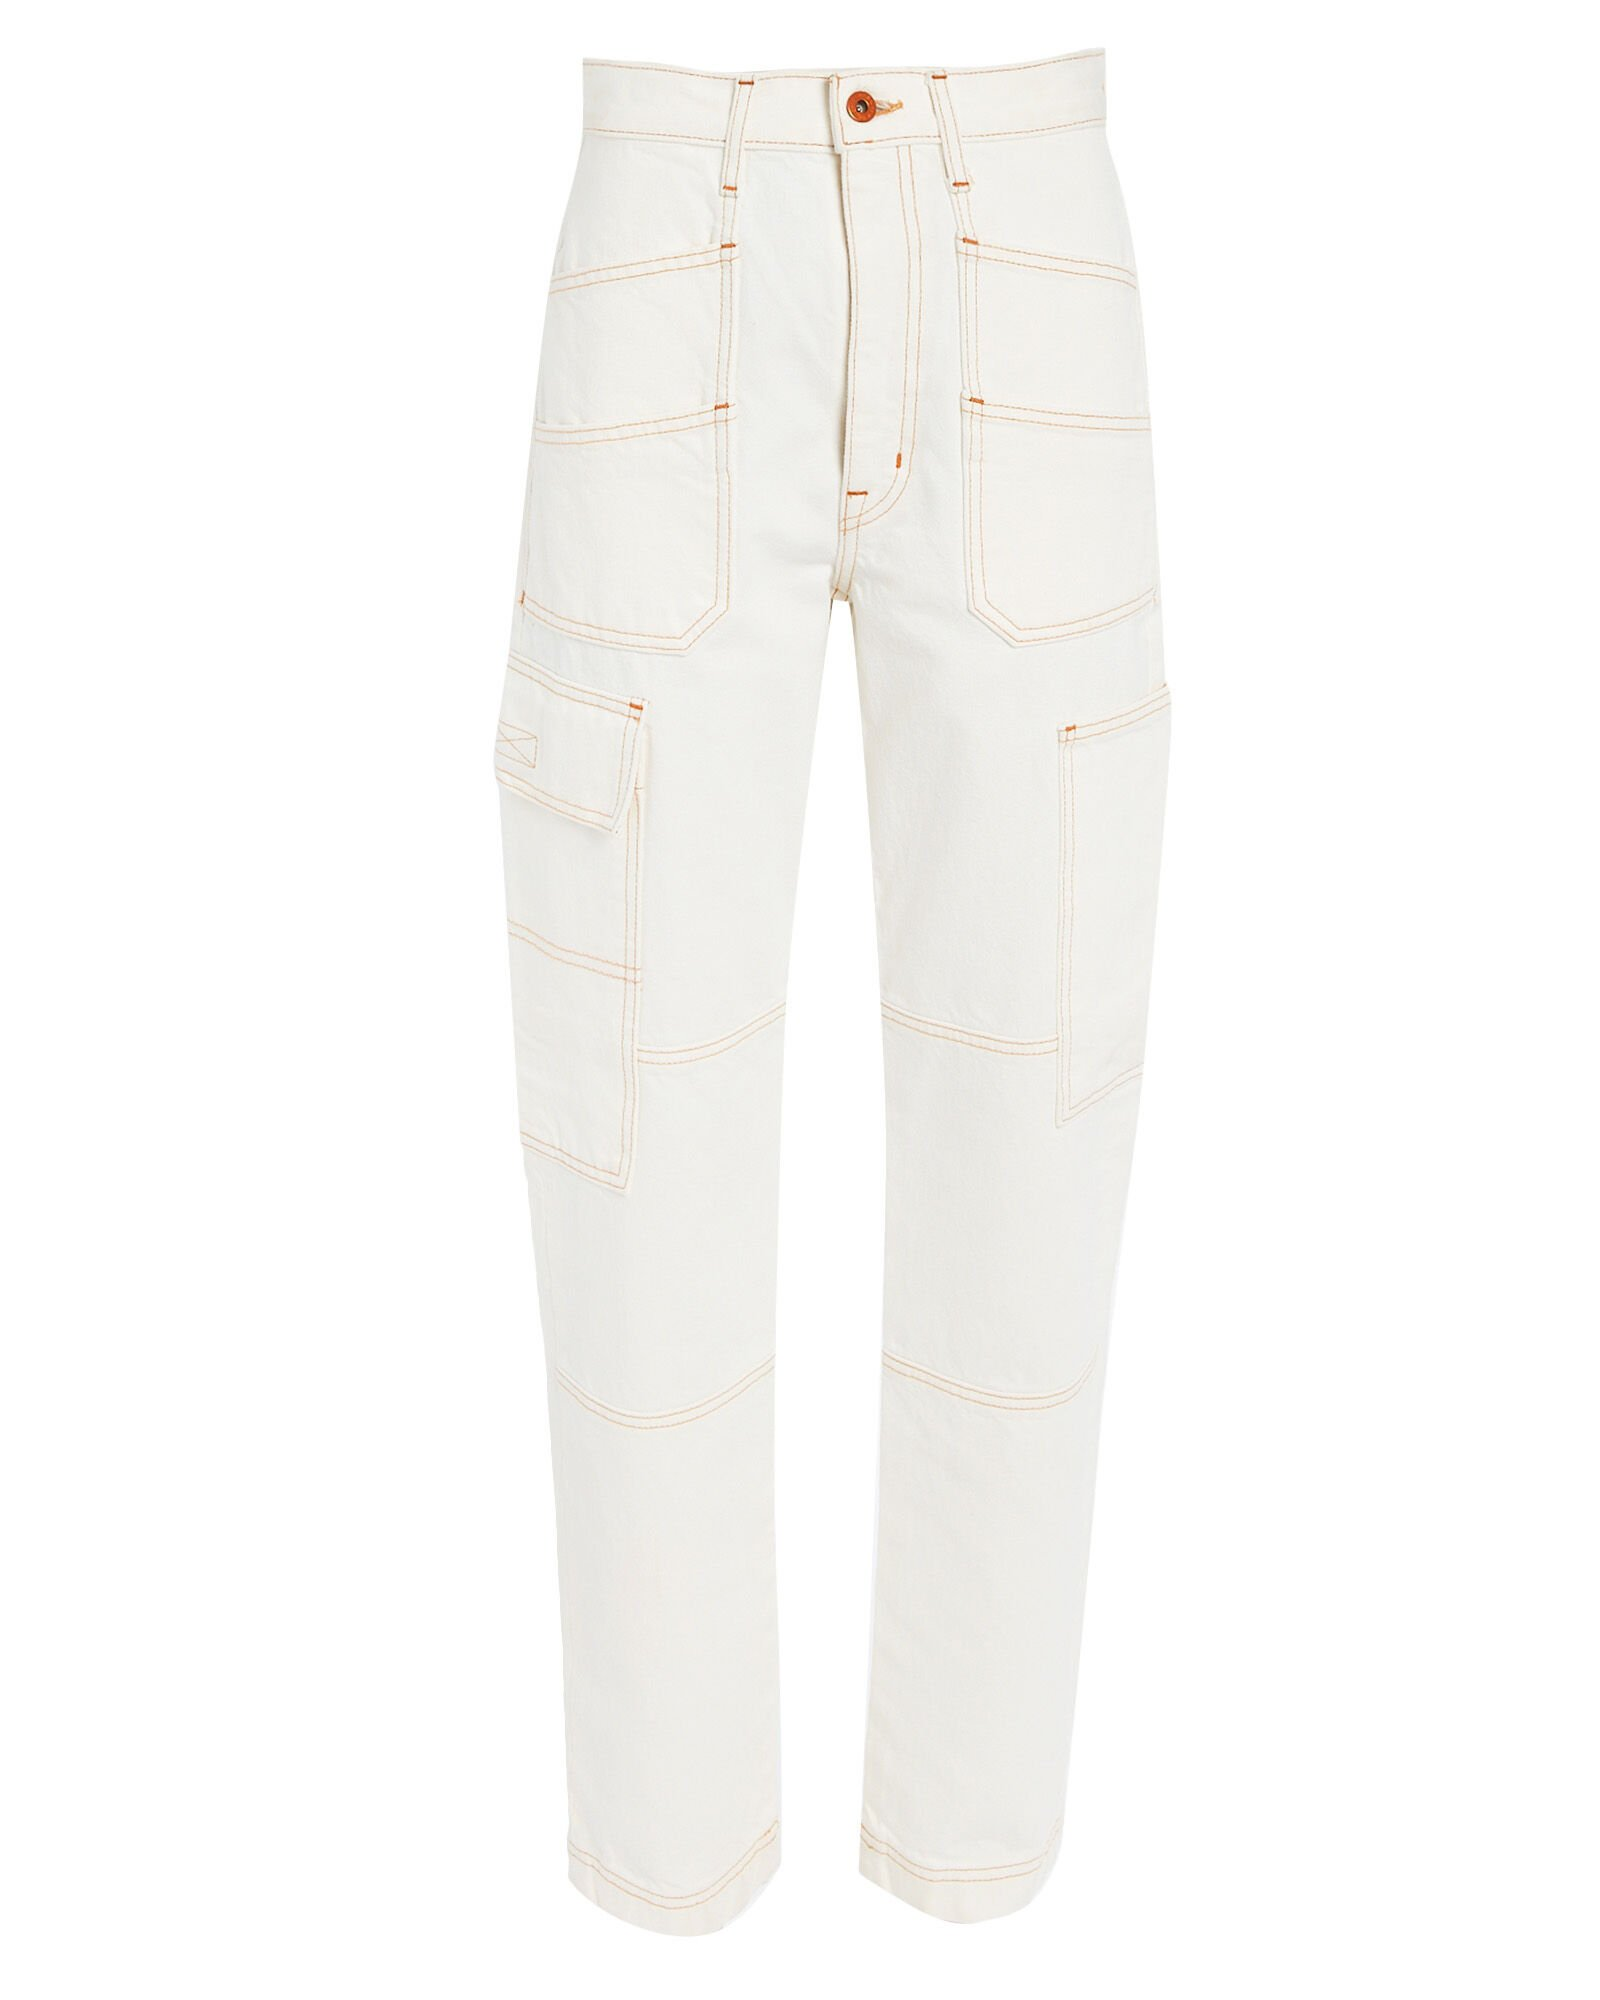 Savior High-Rise Cargo Jeans, NATURAL WHITE, hi-res